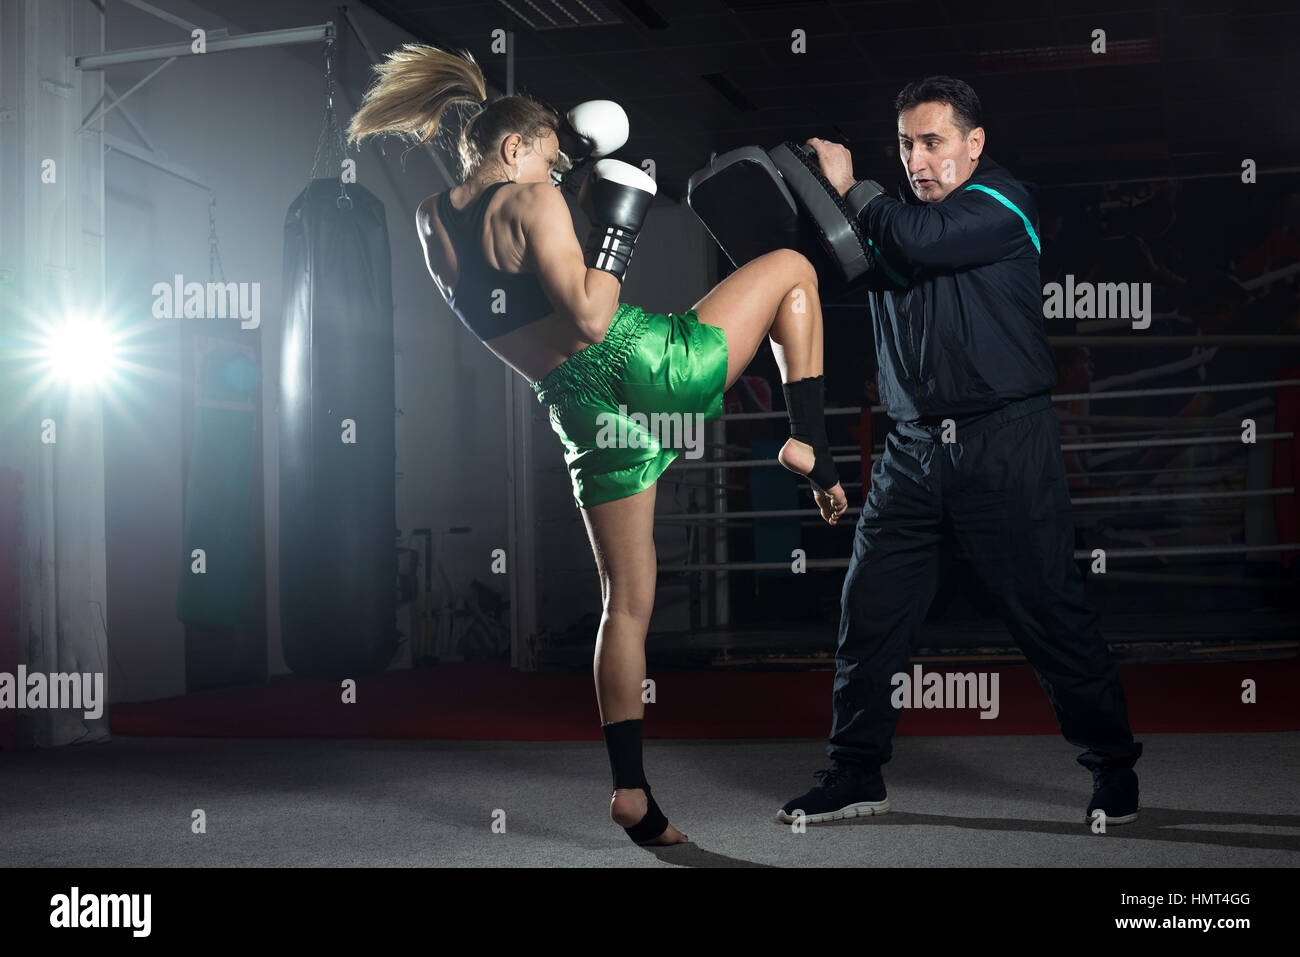 Girl doing knee kick exercise during kickboxing training with personal trainer - Stock Image